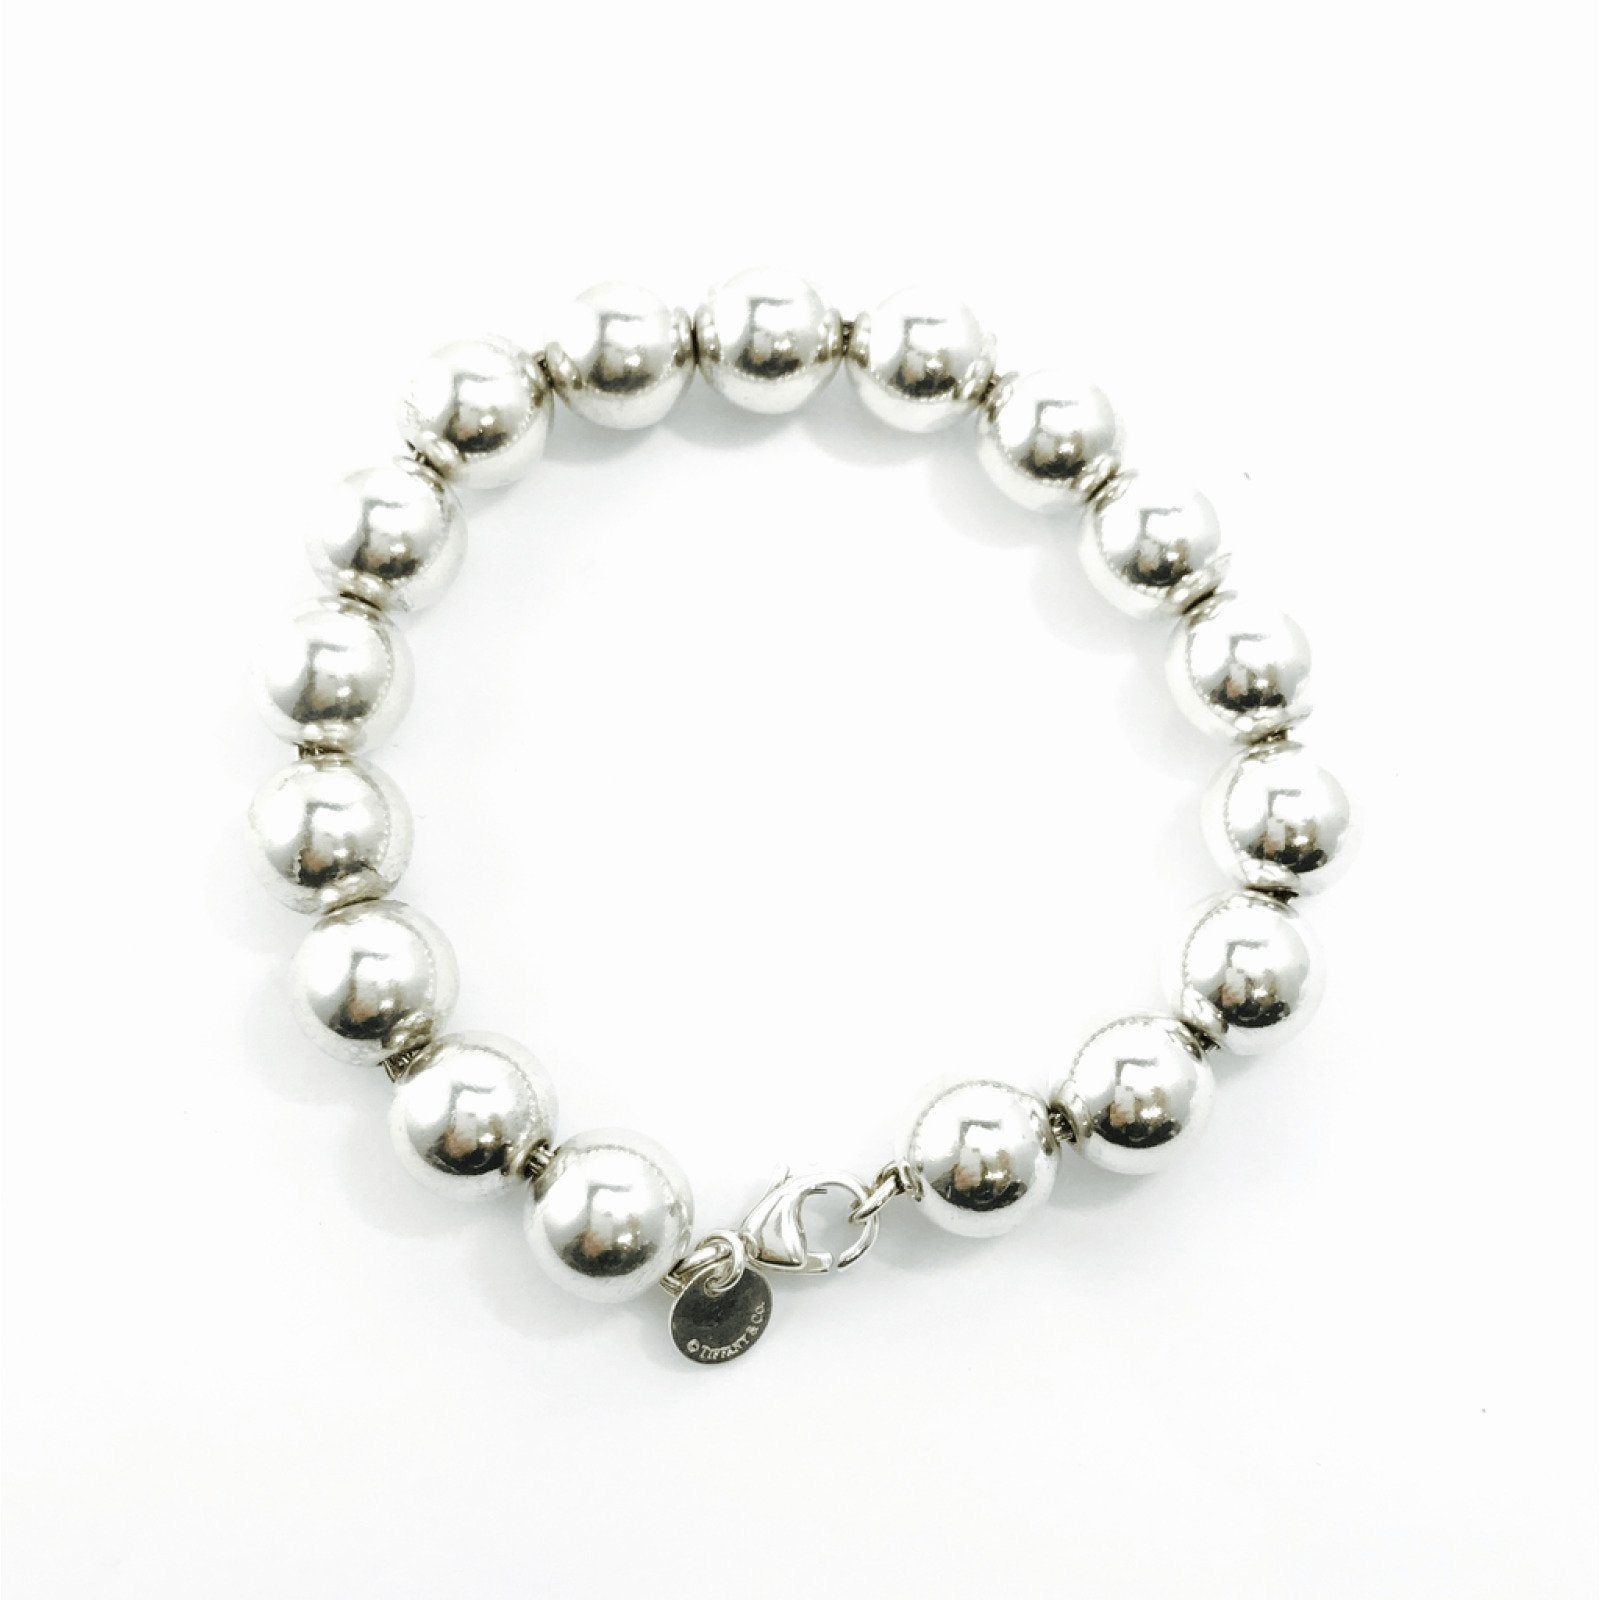 6ca6c3ce5 TIffany & Co. 10mm Bead Bracelet in Sterling Silver– Oliver Jewellery